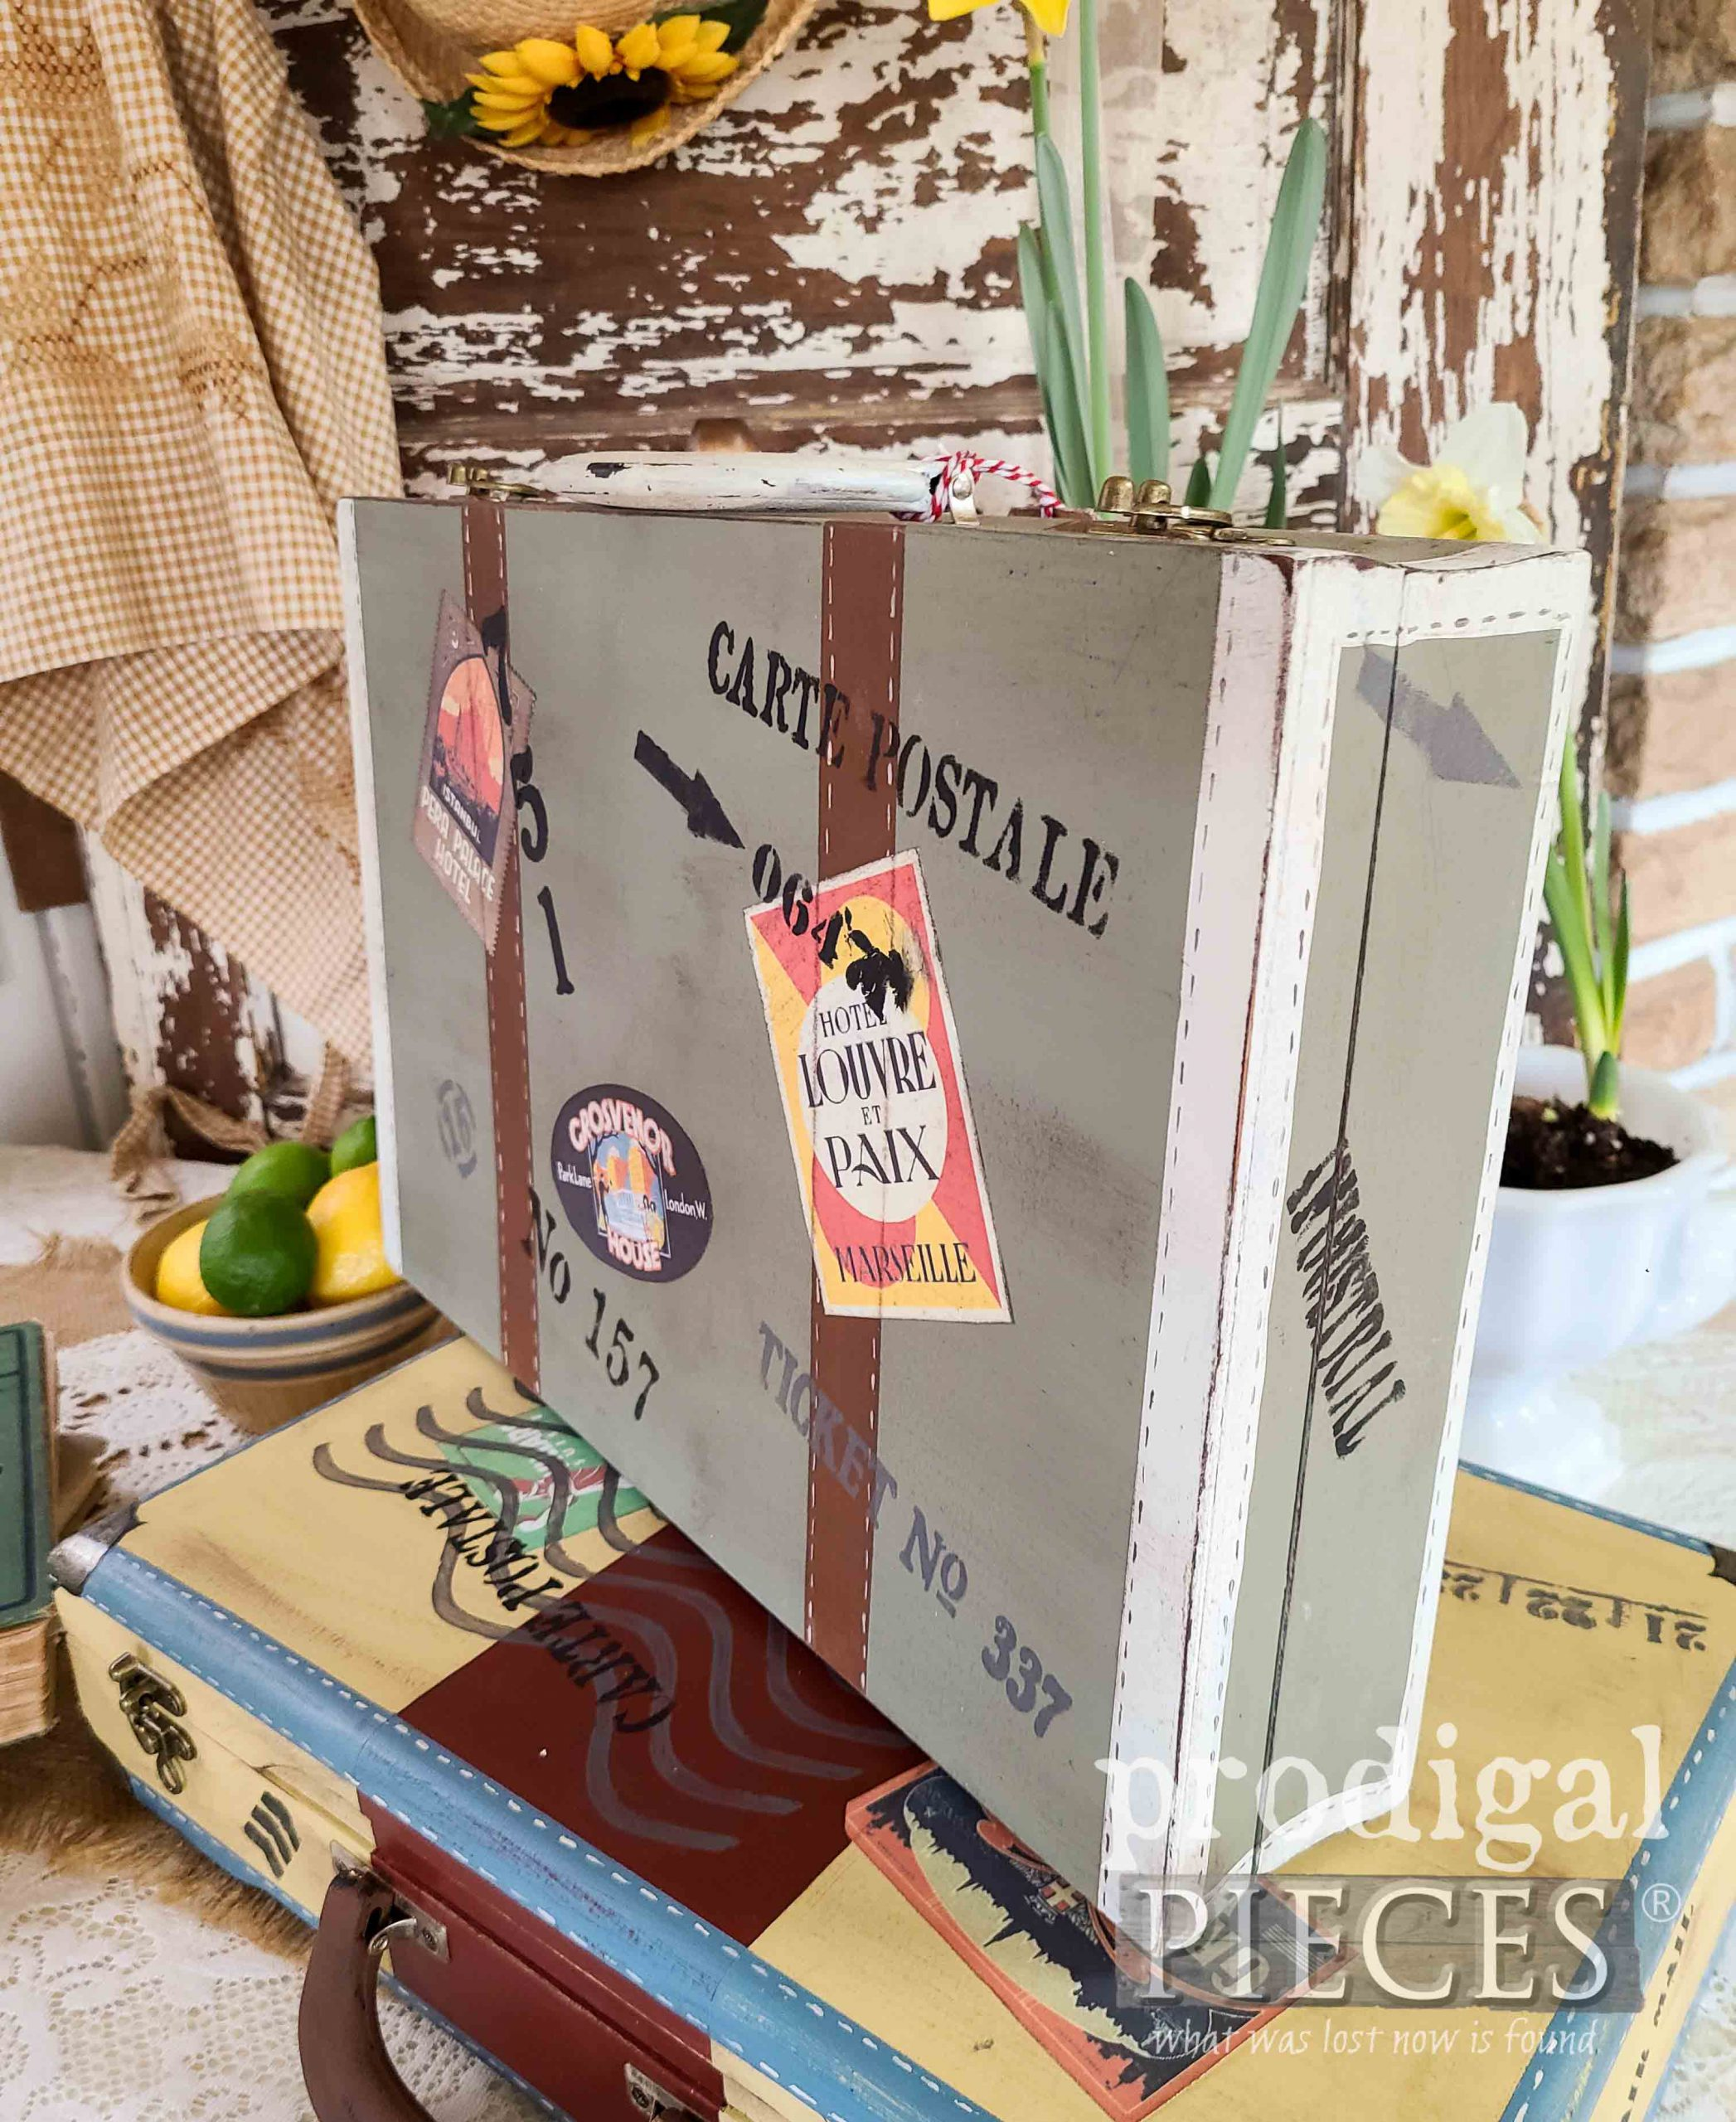 Repurposed Silverware Box into Green Vintage Luggage Box by Larissa of Prodigal Pieces | prodigalpieces.com #prodigalpieces #vintage #home #homedecor